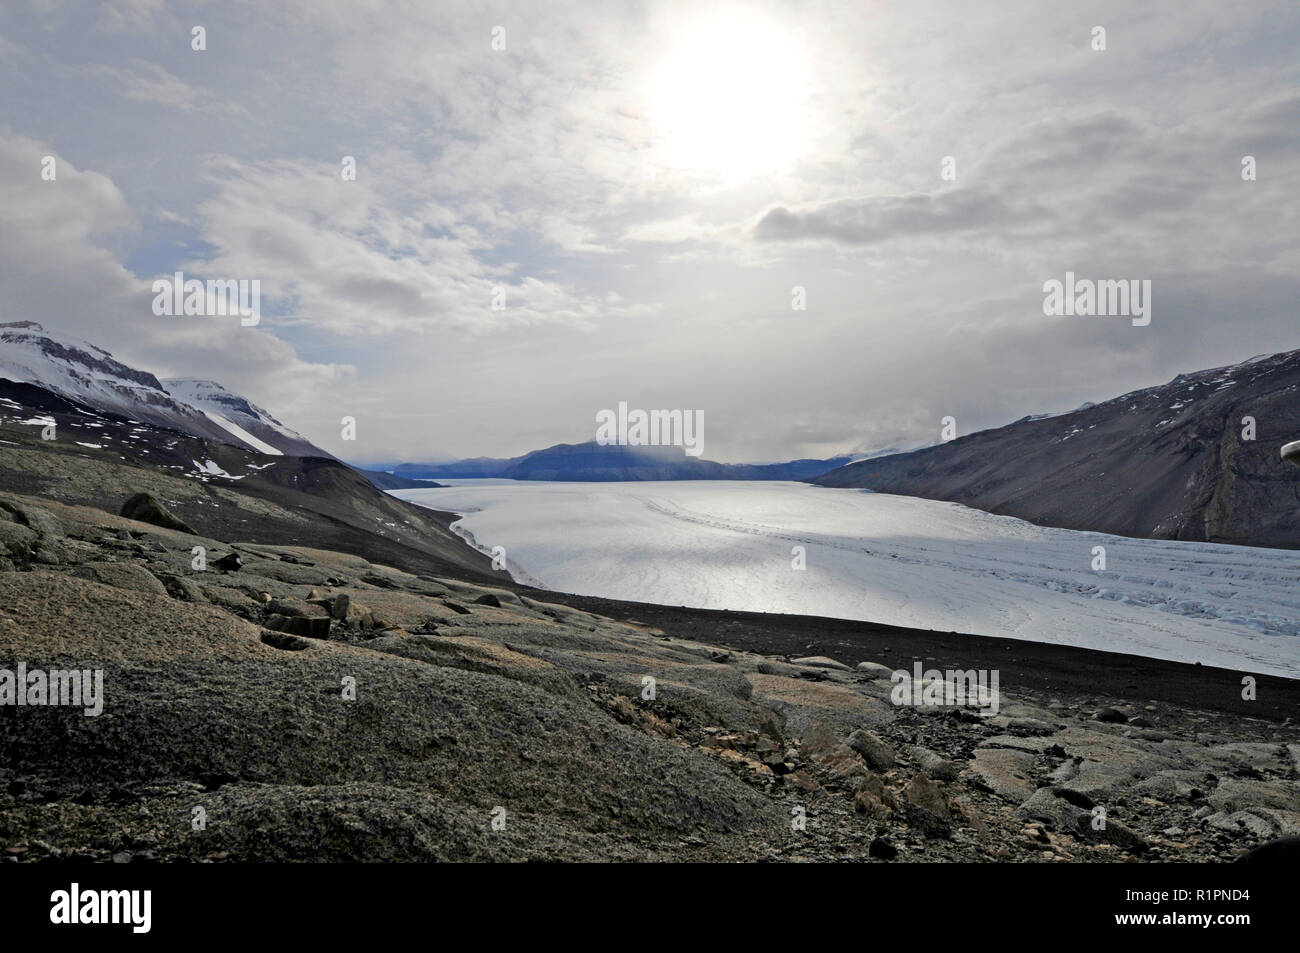 Taylor Valley, McMurdo Dry Valleys, Antarctica, showing the part of Taylor Glacier where a subglacial lake is the source of Blood Falls - Stock Image